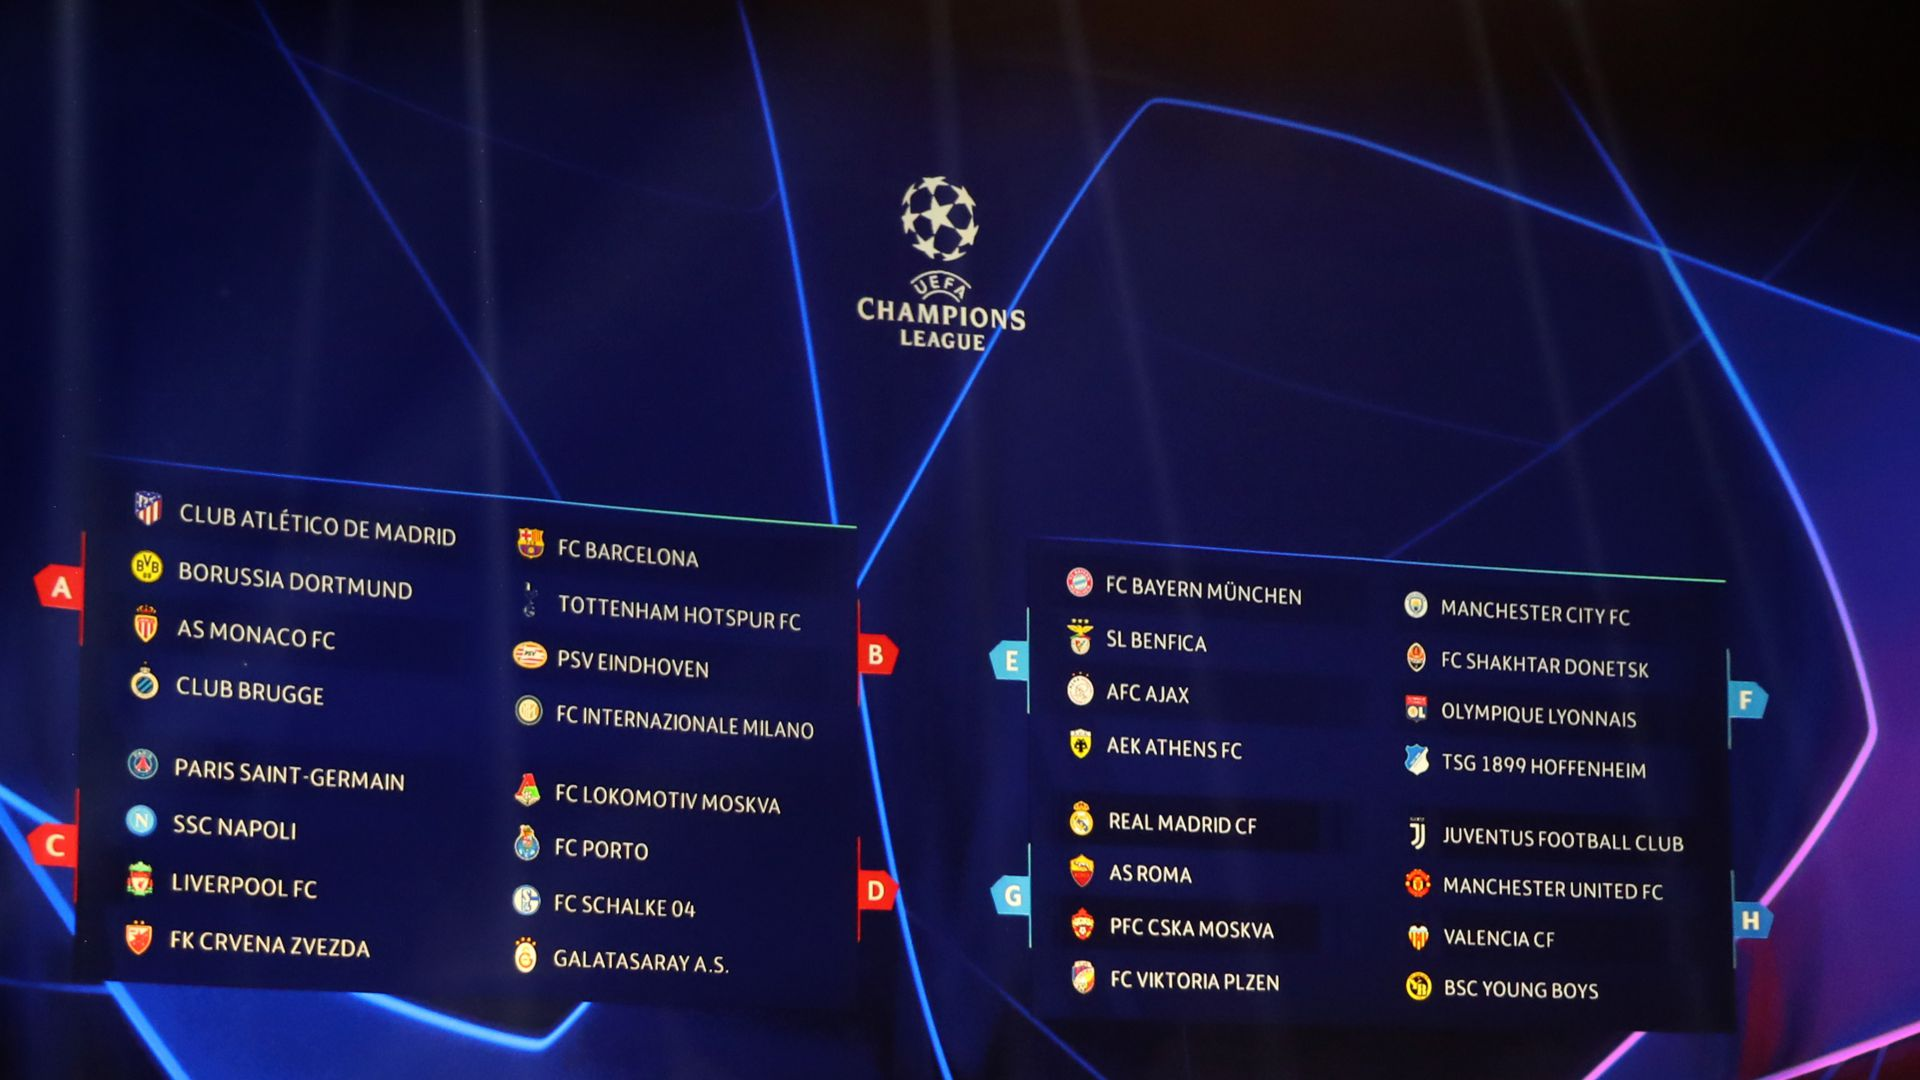 Gironi Champions League 2018 2019 Calendario Risultati E Classifiche Goal Com